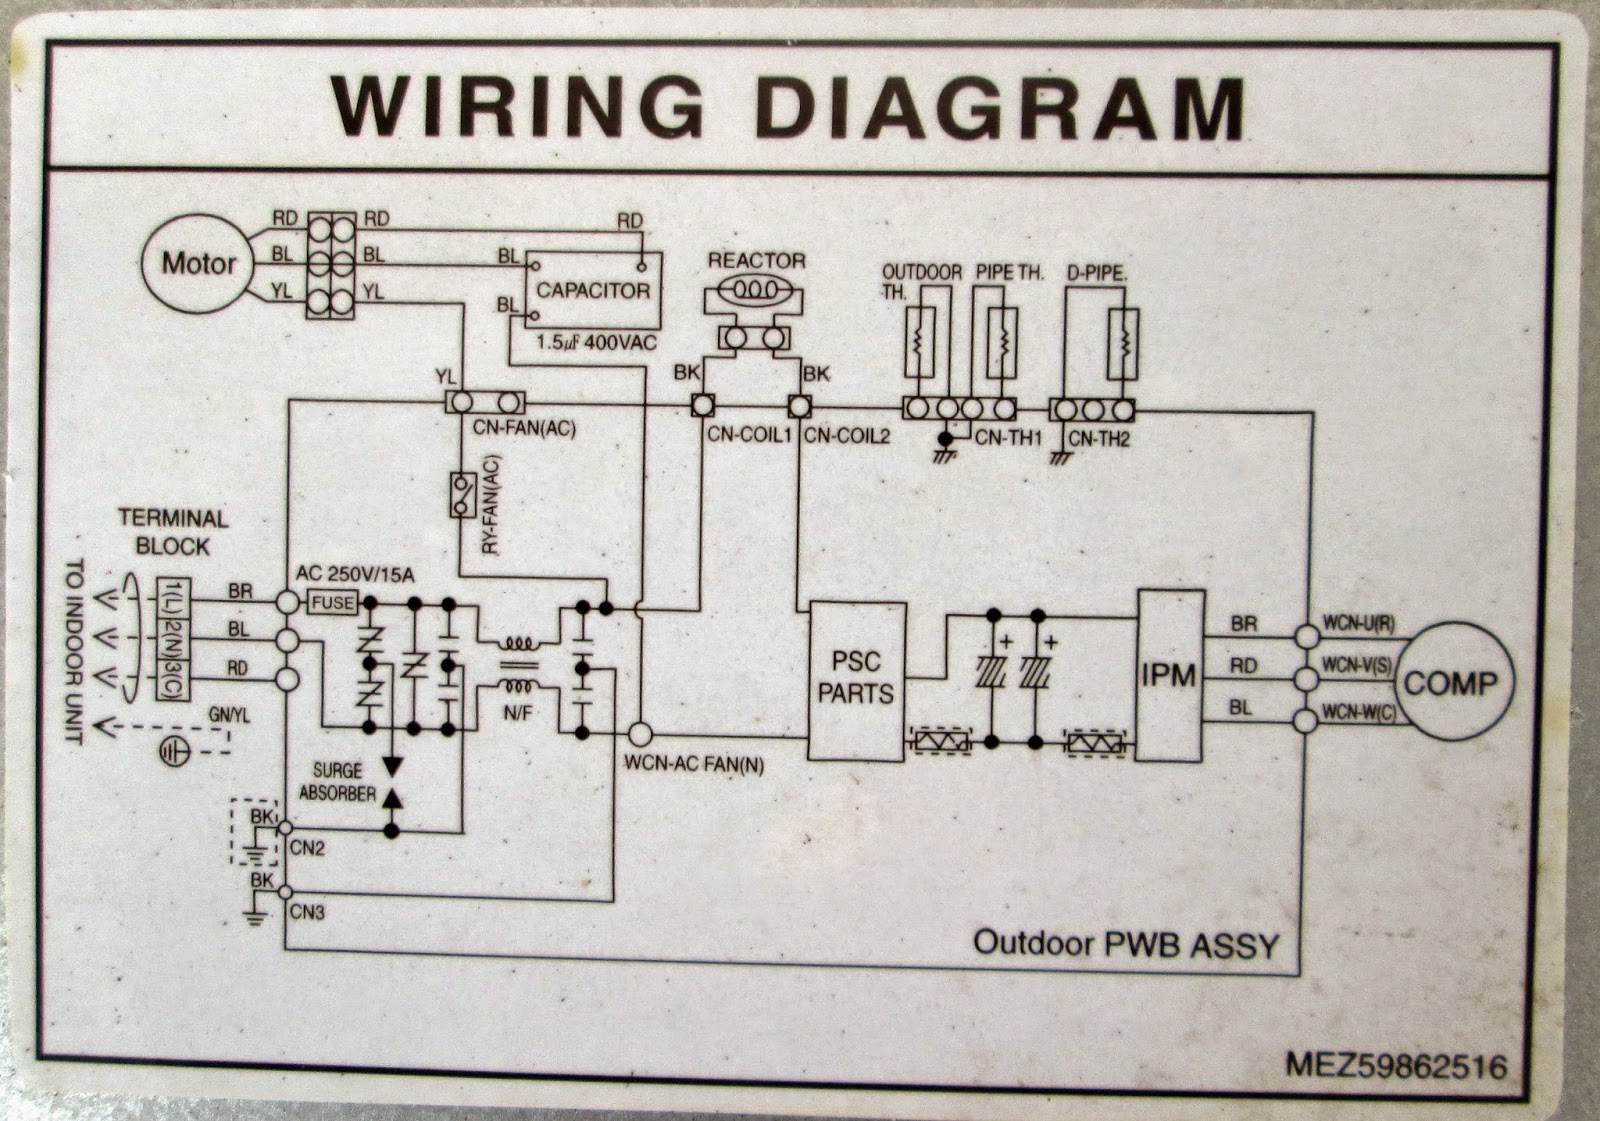 medium resolution of split system air con wiring diagram wiring diagram advance split system air conditioner wiring diagram split air con wiring diagram